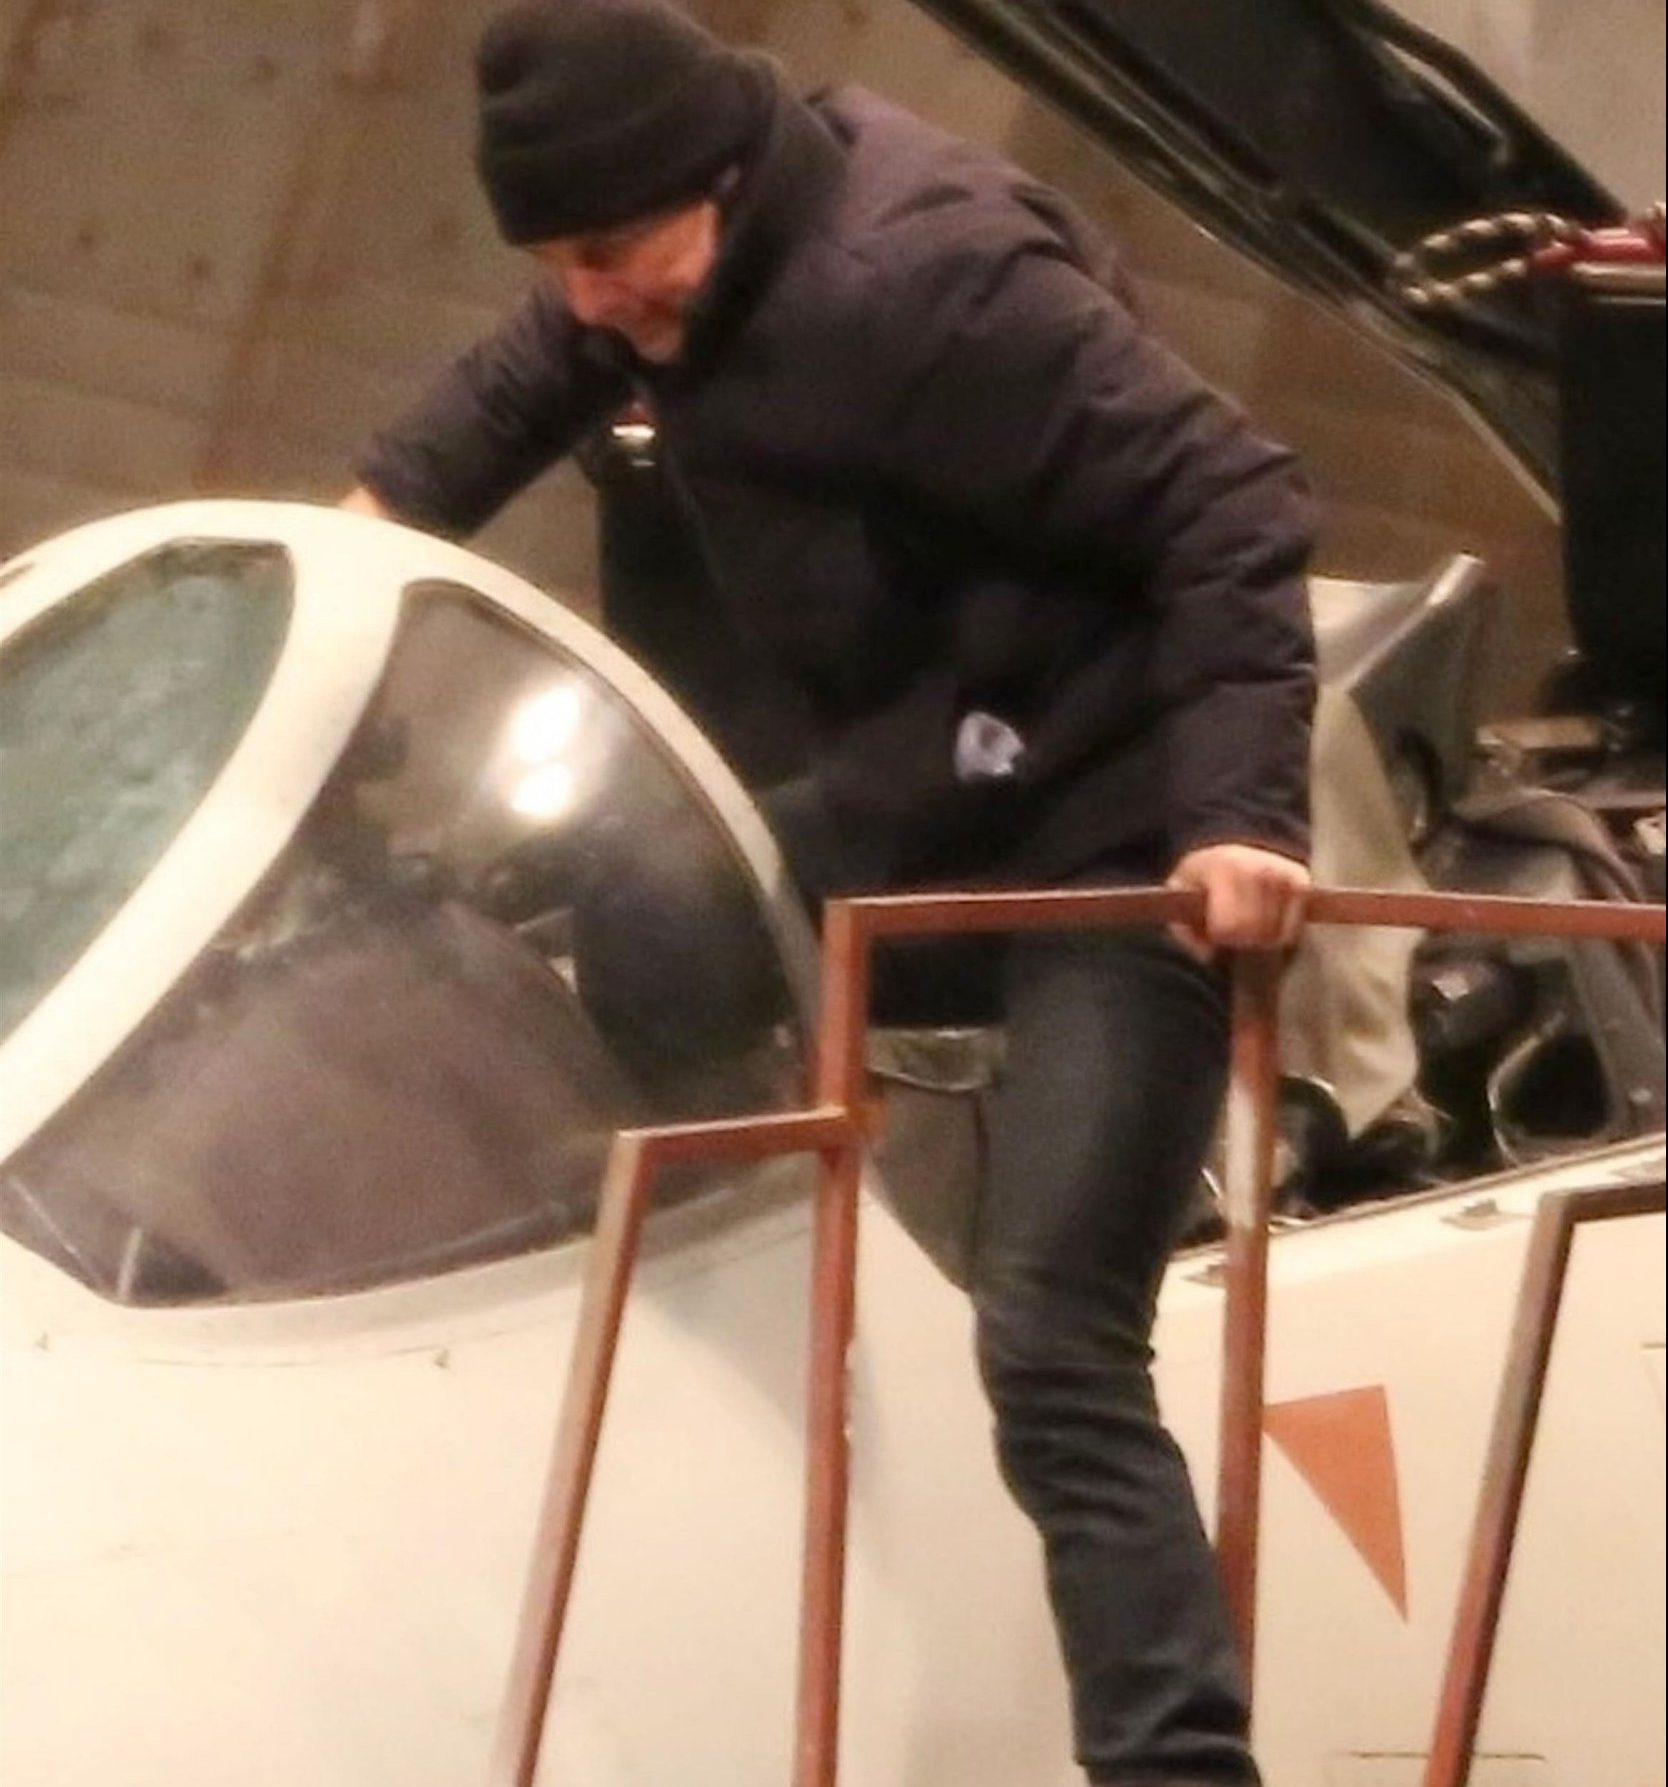 Lake Tahoe, CA - *EXCLUSIVE* - Actor Tom Cruise was seen getting acquainted with an F14 Fighter Jet on the set of 'Top Gun 2' filming in Lake Tahoe, California. Pictured: Tom Cruise BACKGRID USA 16 DECEMBER 2018 BYLINE MUST READ: W Blanco / BACKGRID USA: +1 310 798 9111 / usasales@backgrid.com UK: +44 208 344 2007 / uksales@backgrid.com *UK Clients - Pictures Containing Children Please Pixelate Face Prior To Publication*